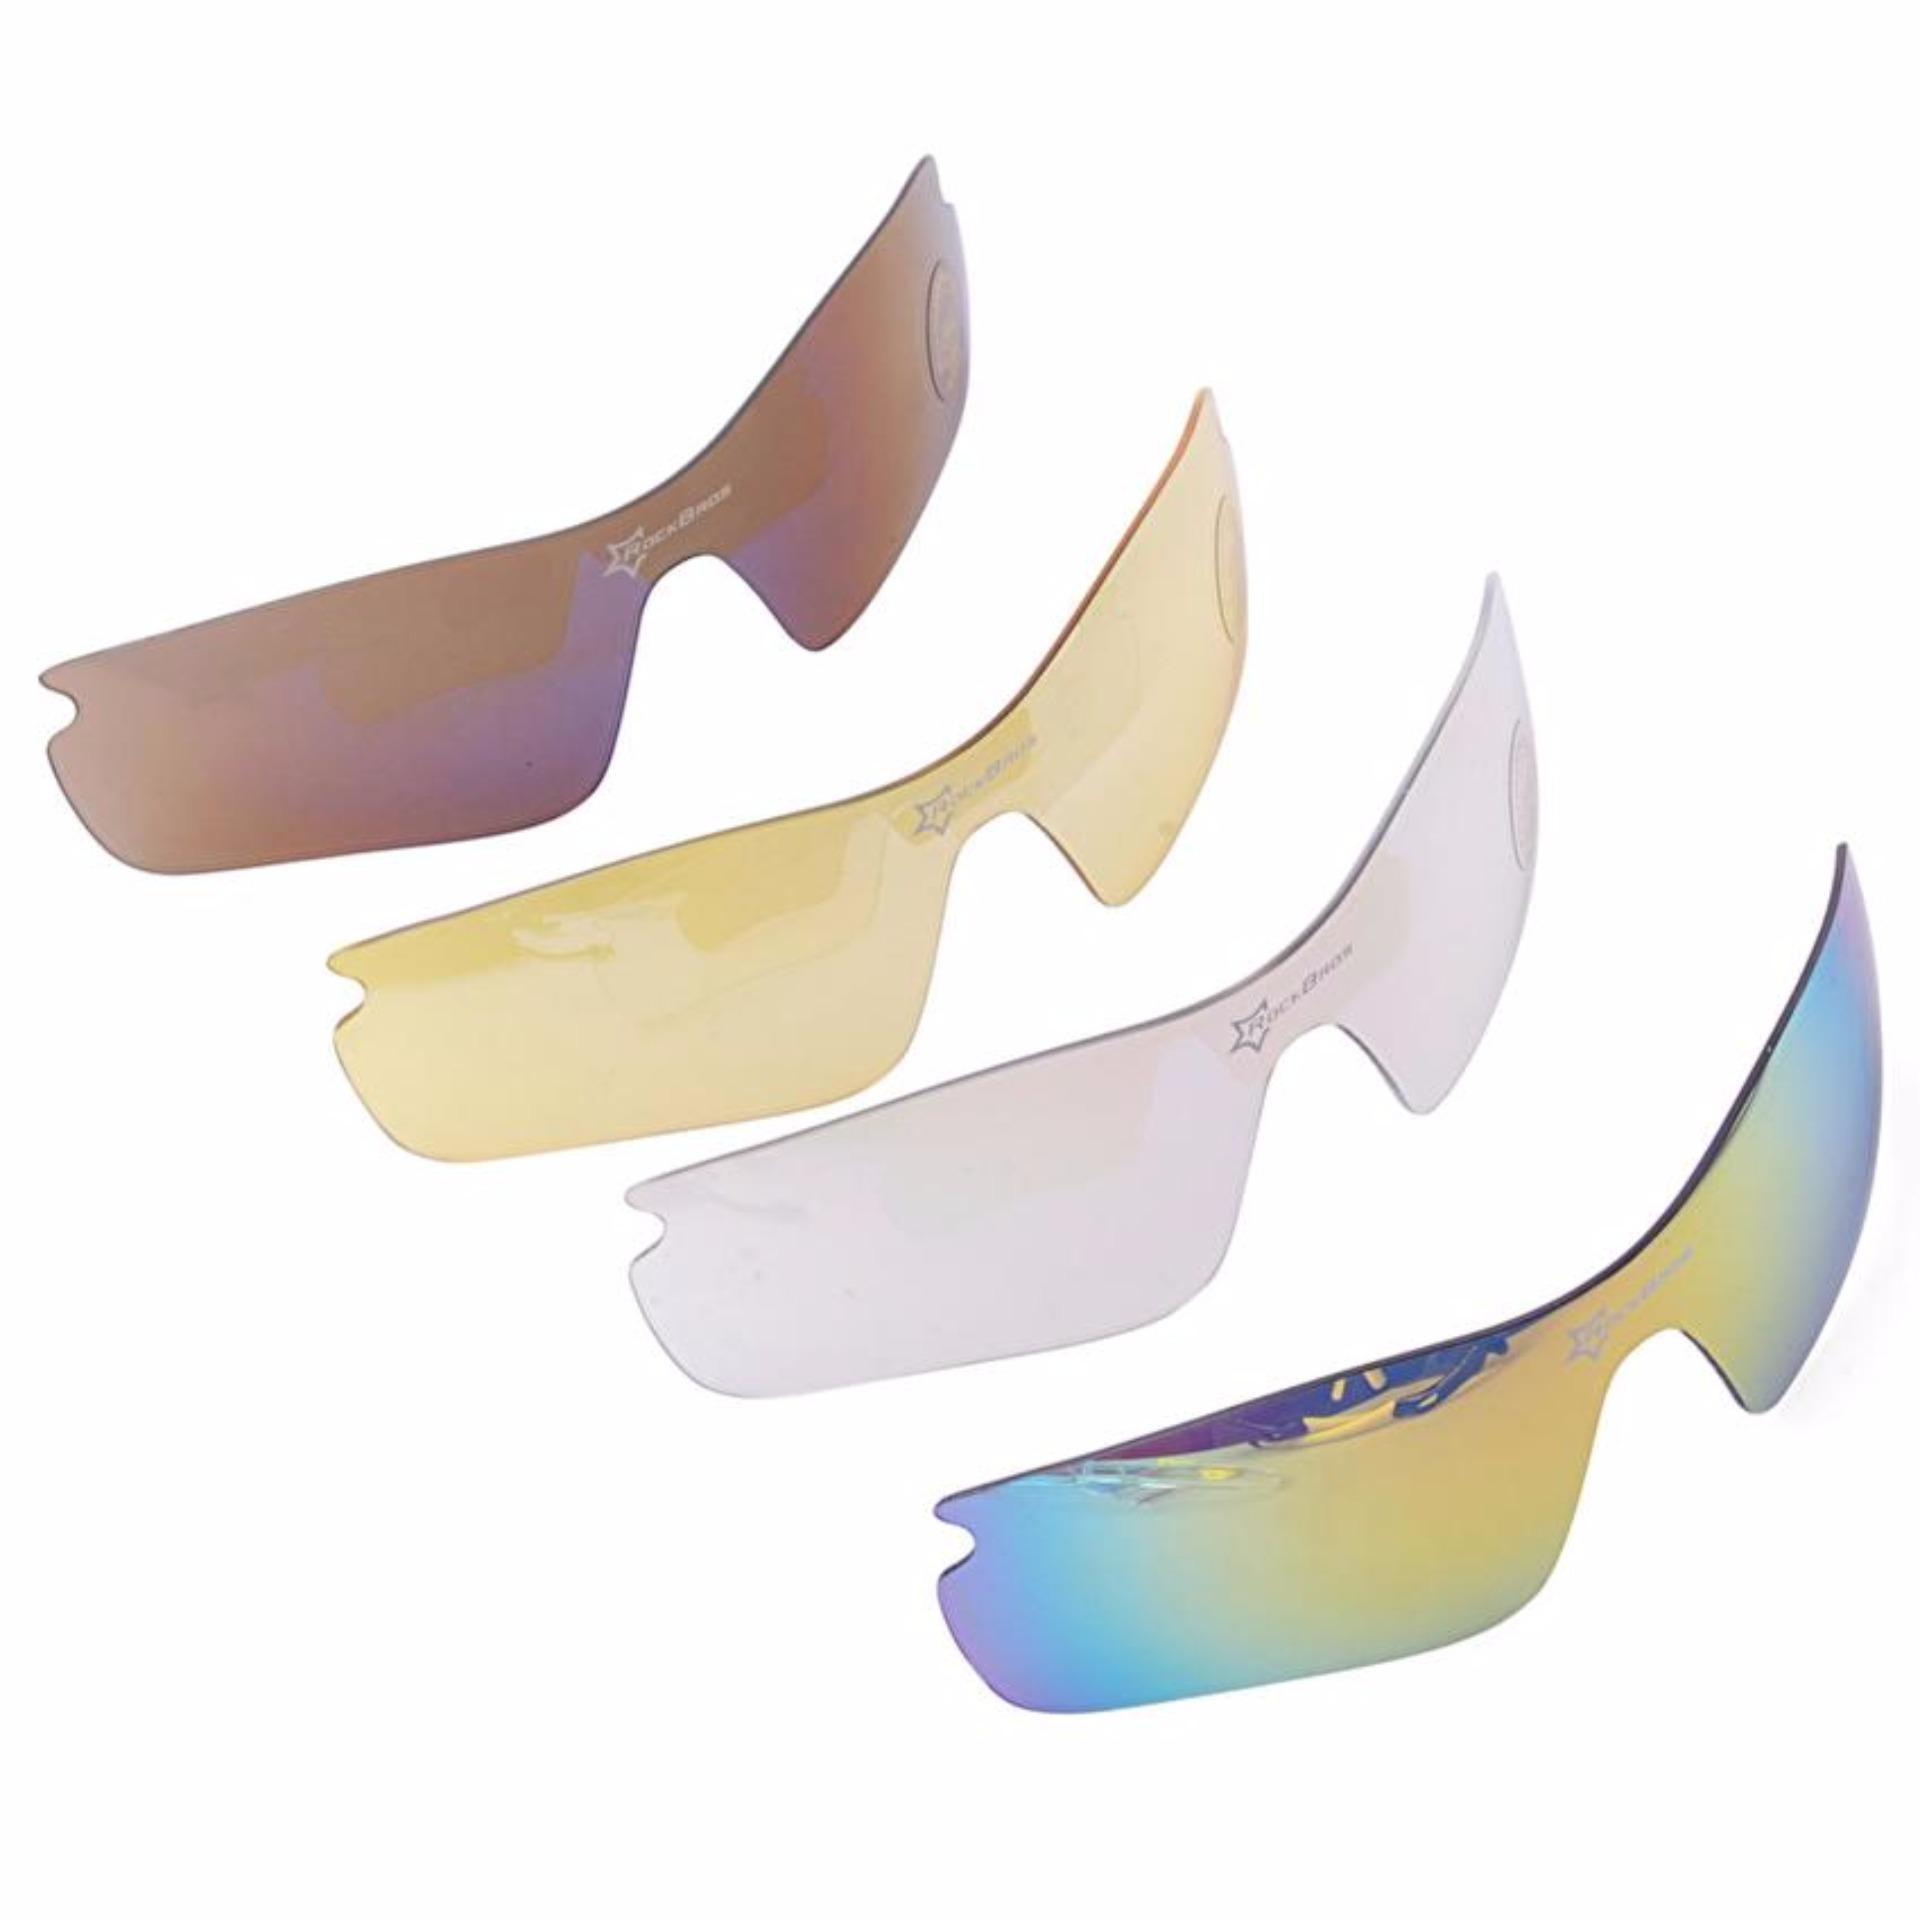 ... RockBros Polarized Cycling Sports Sunglasses with 5 Pairs of Lenses Yellow intl